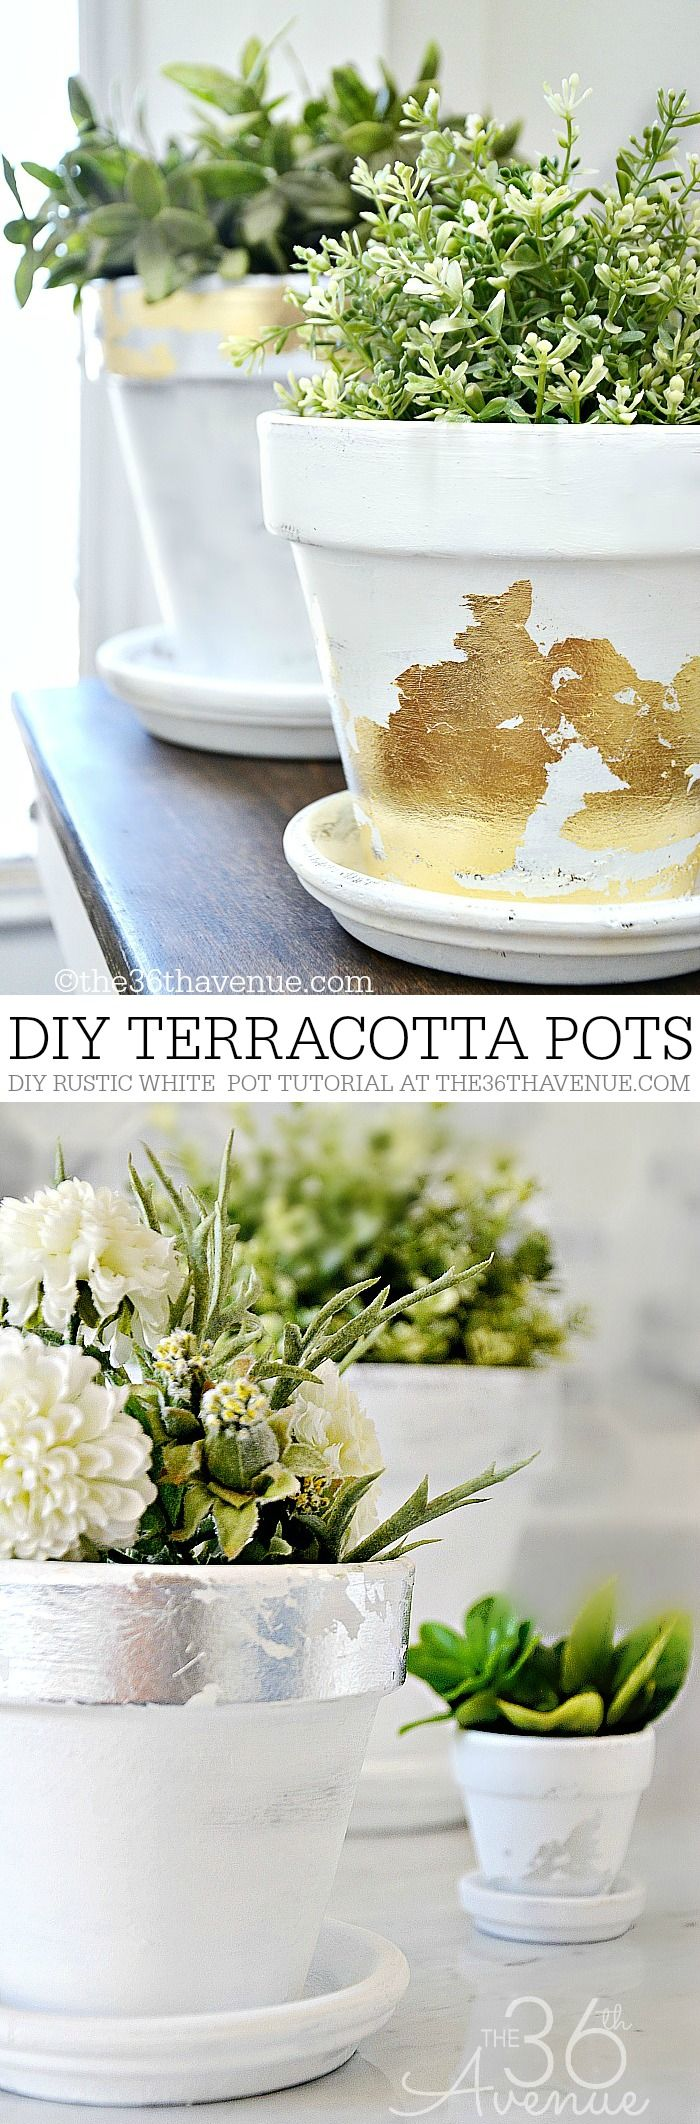 DIY Home Decor - Terracotta Pots with silver and gold leaf. Beautiful home decor idea.